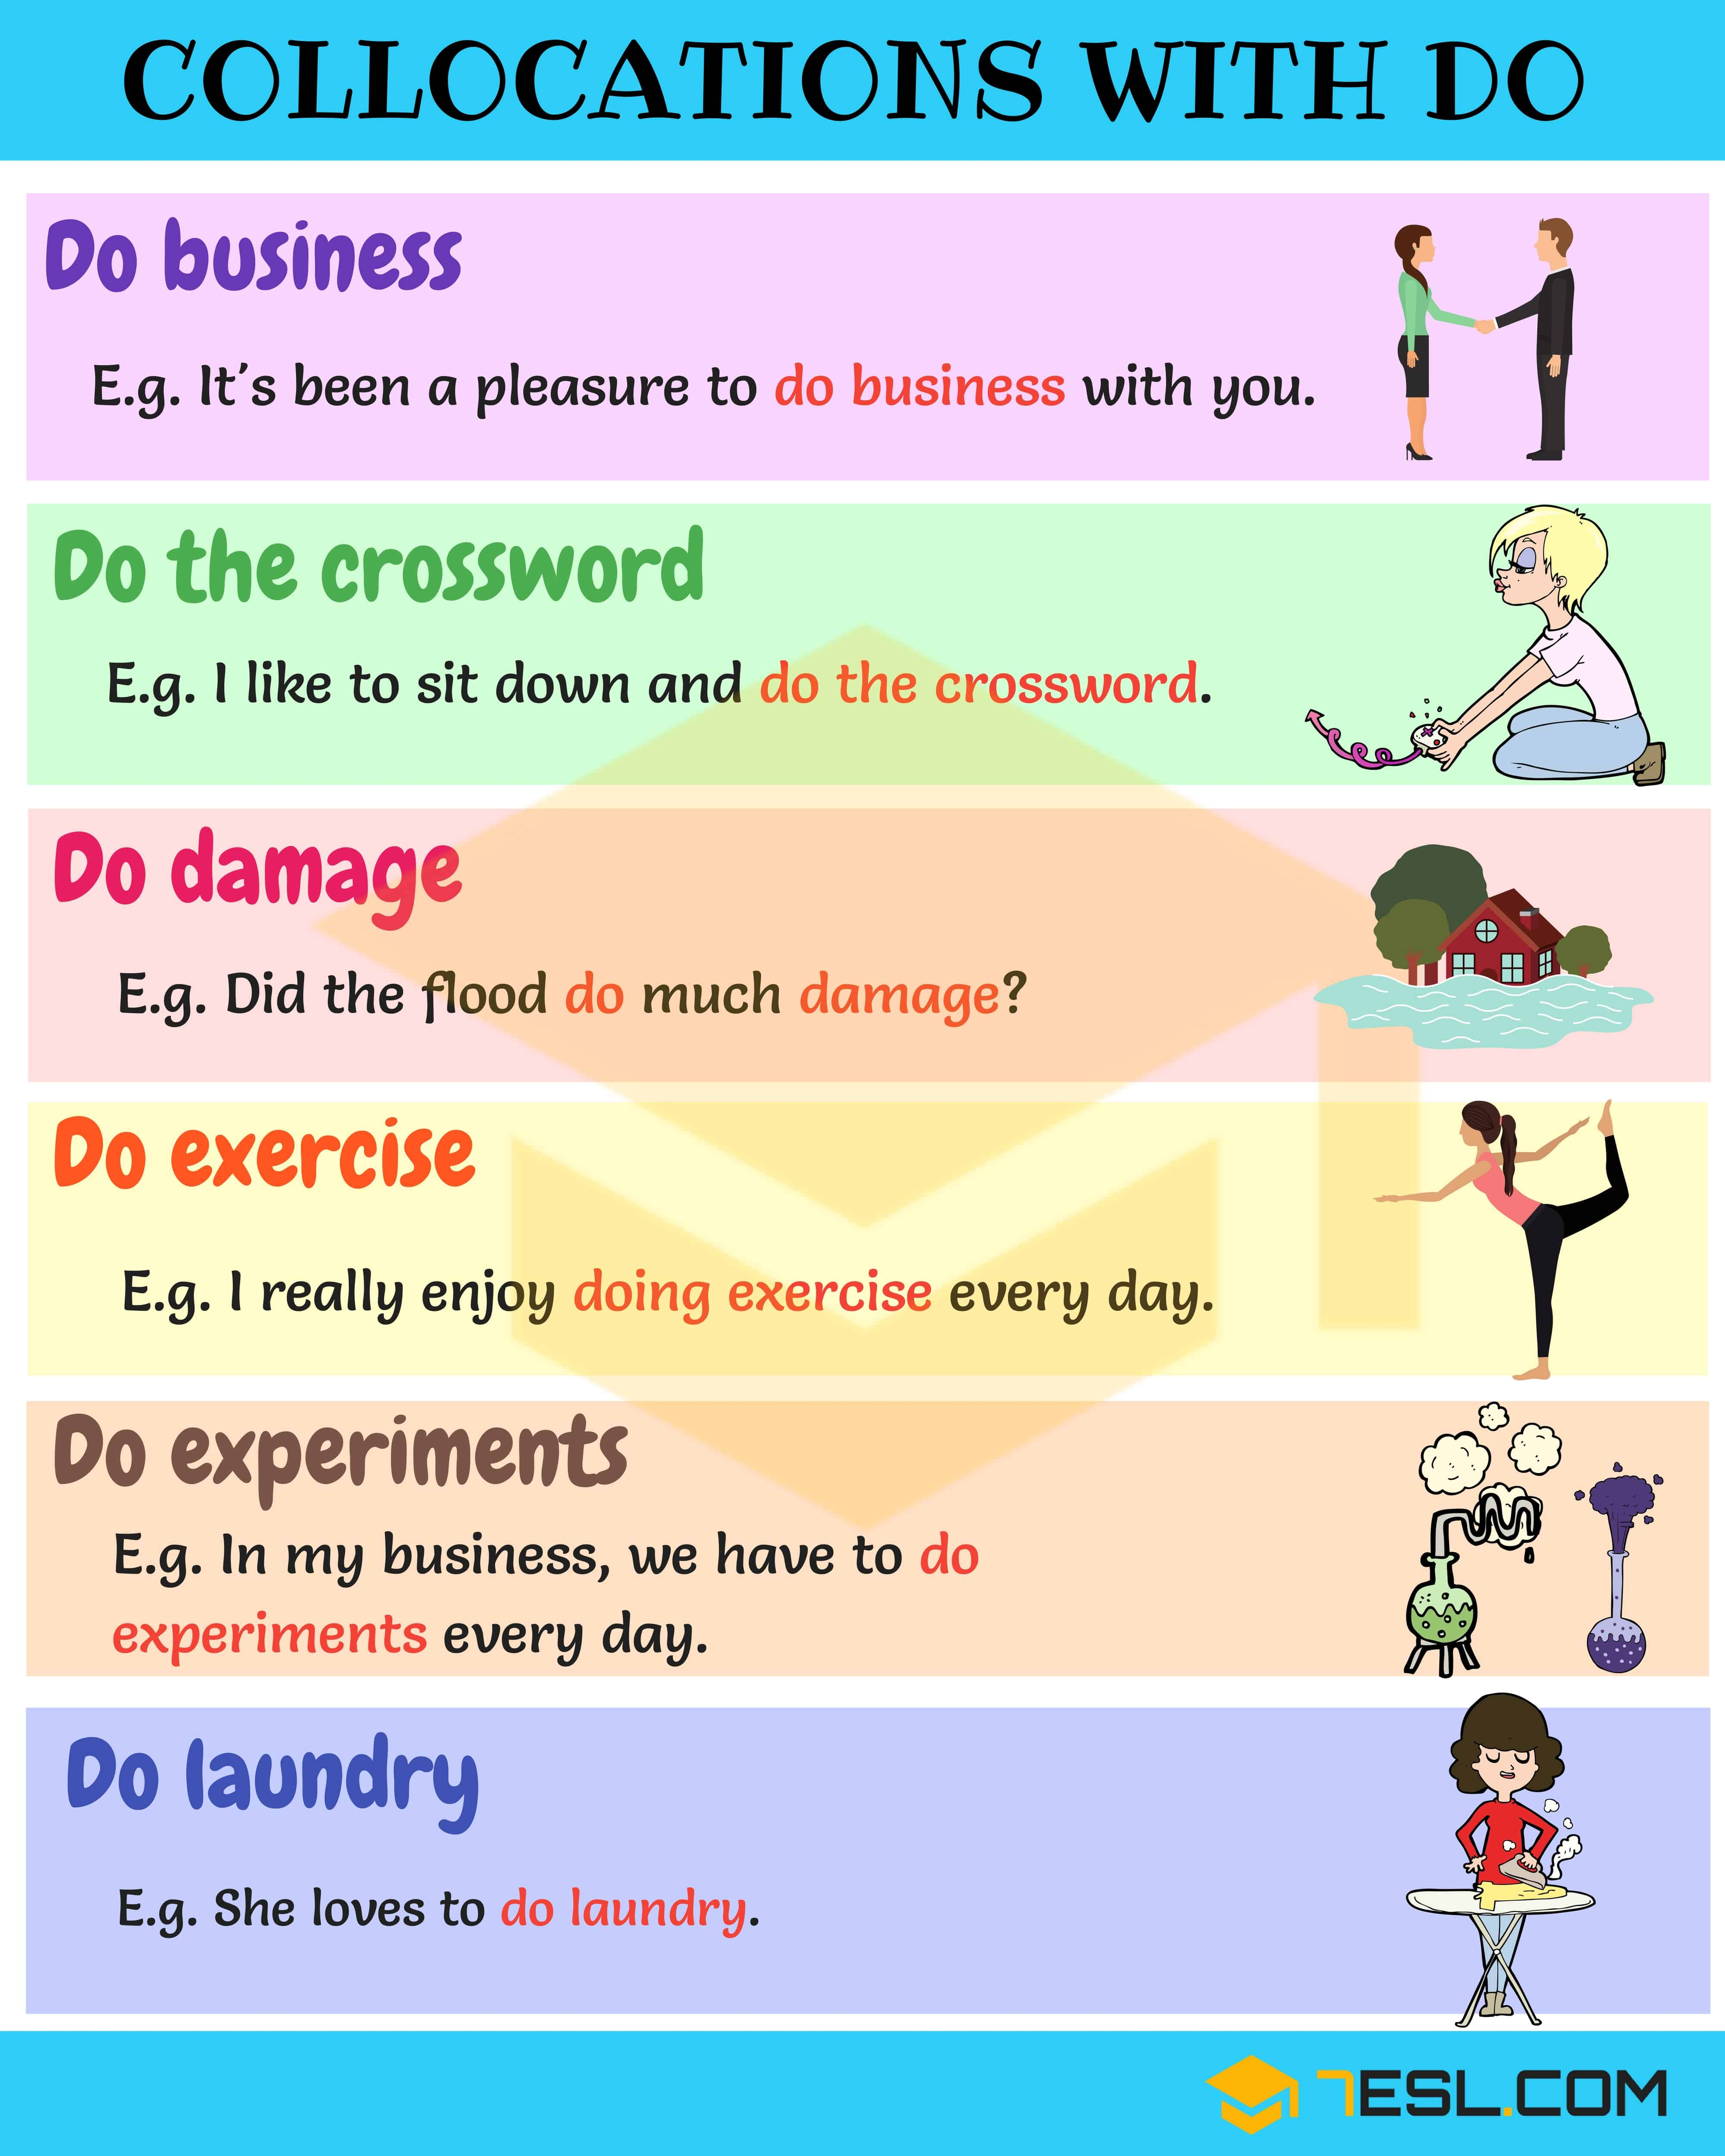 consequences meaning in business dictionary